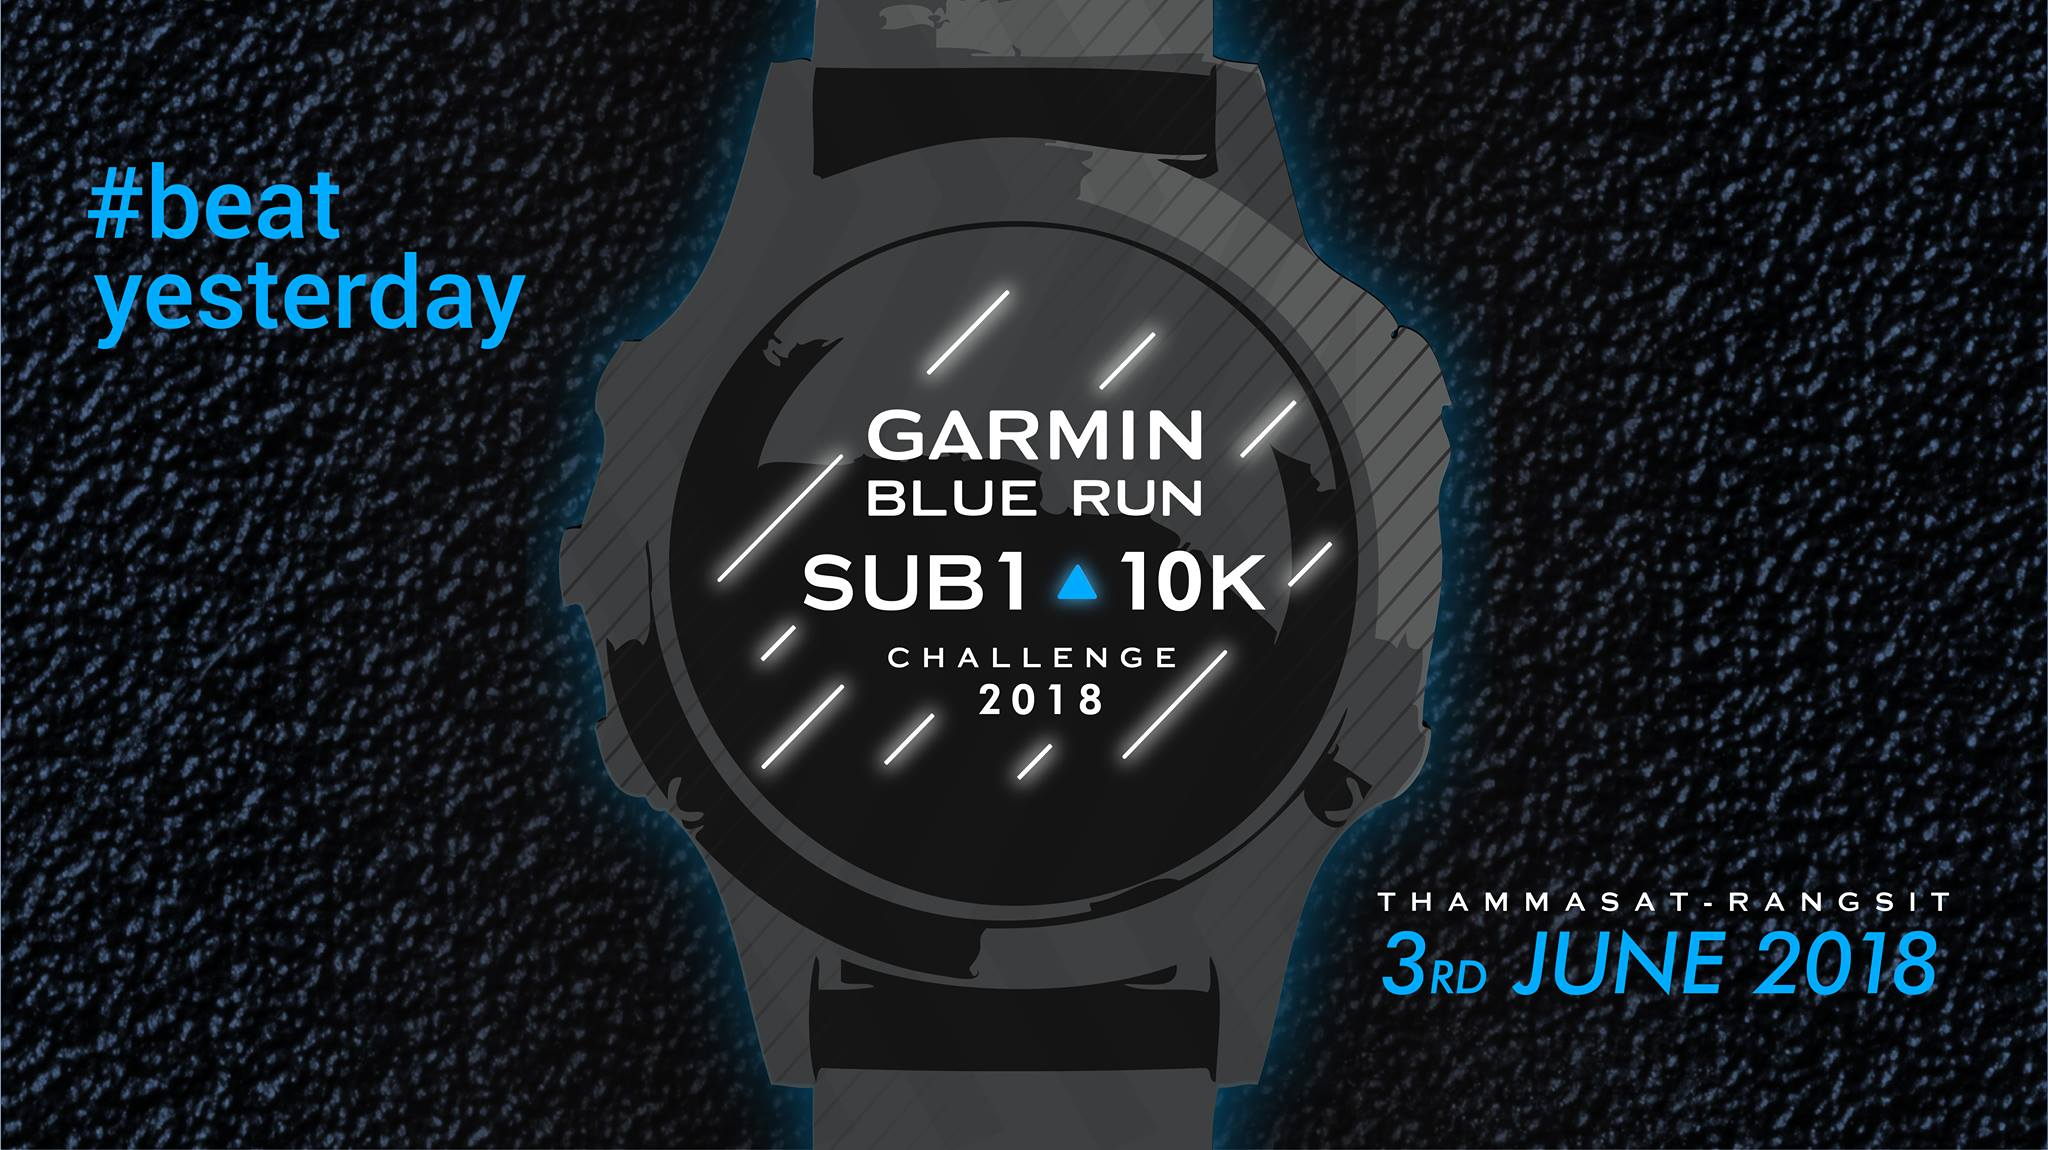 Garmin Blue Run Sub1 10K Challenge 2018